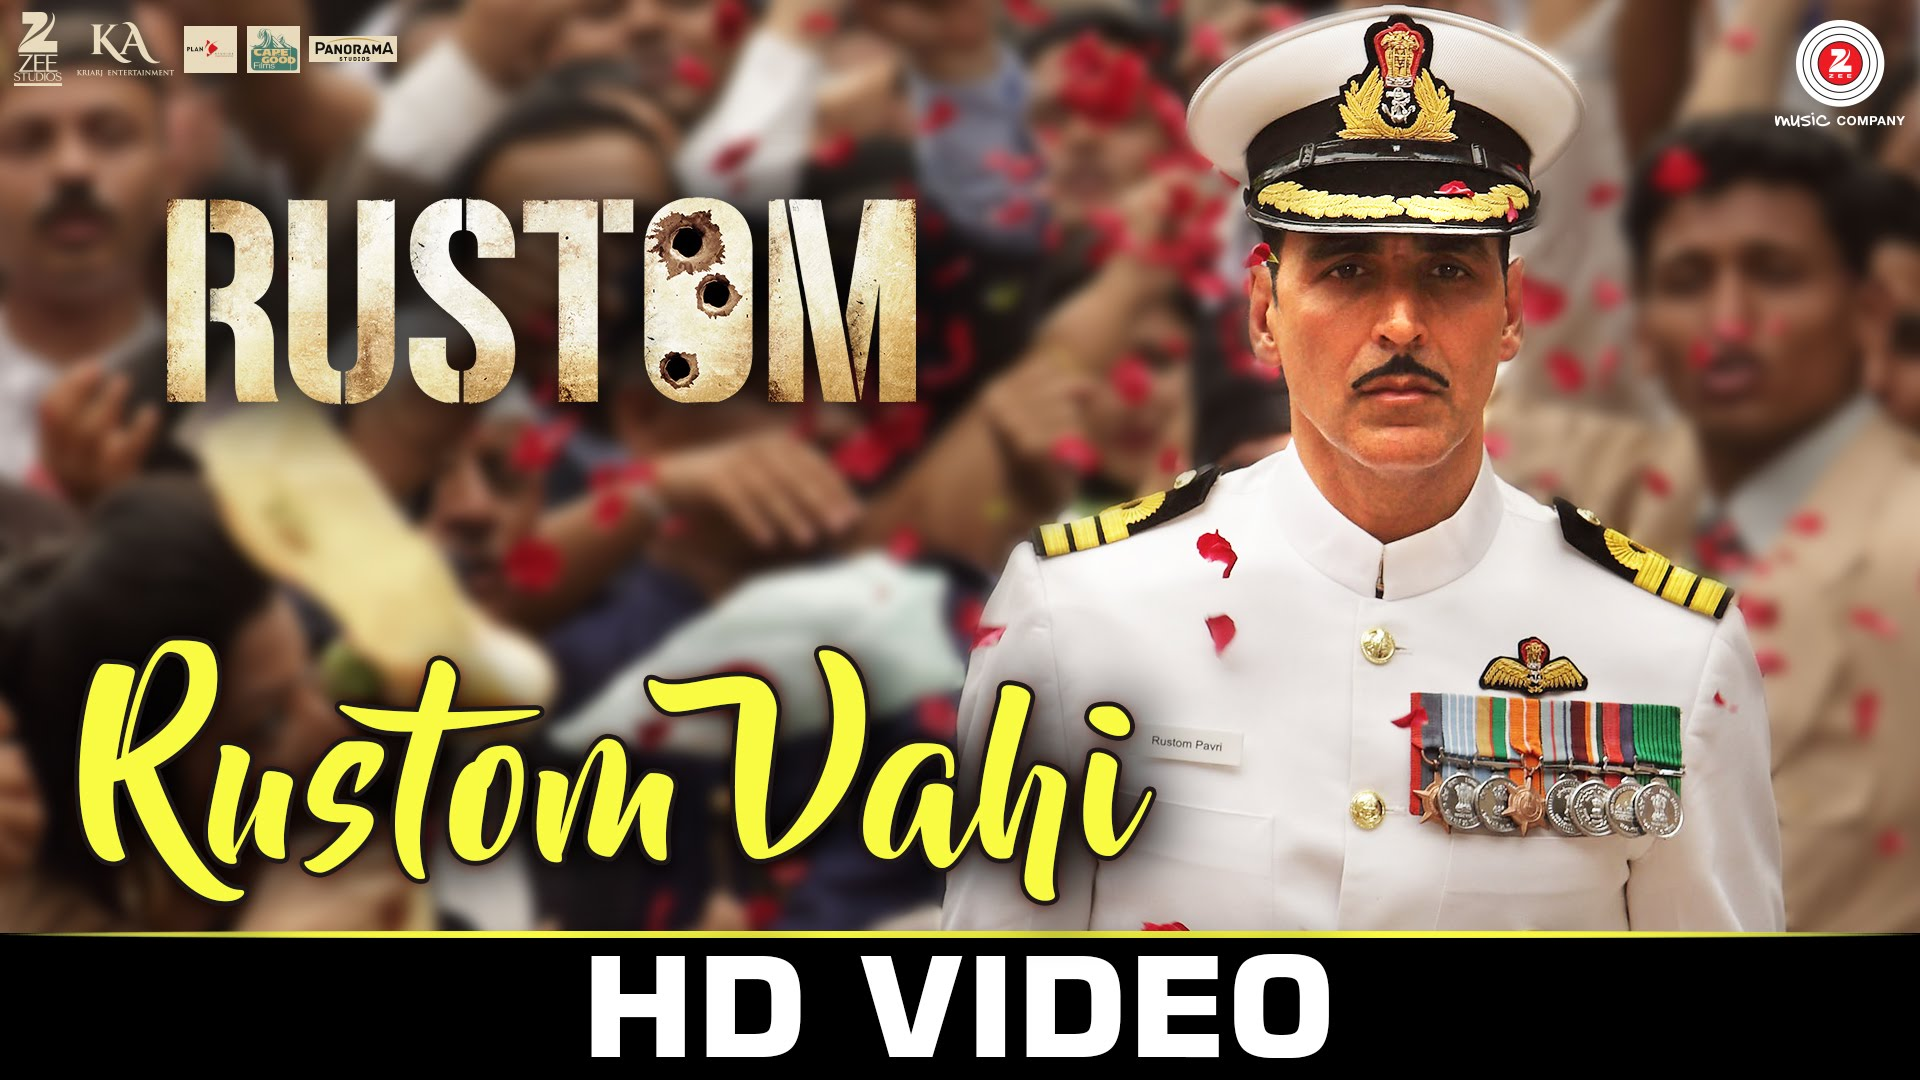 Rustom Vahi song tells us a lot more about the story behind the '3 Shots'